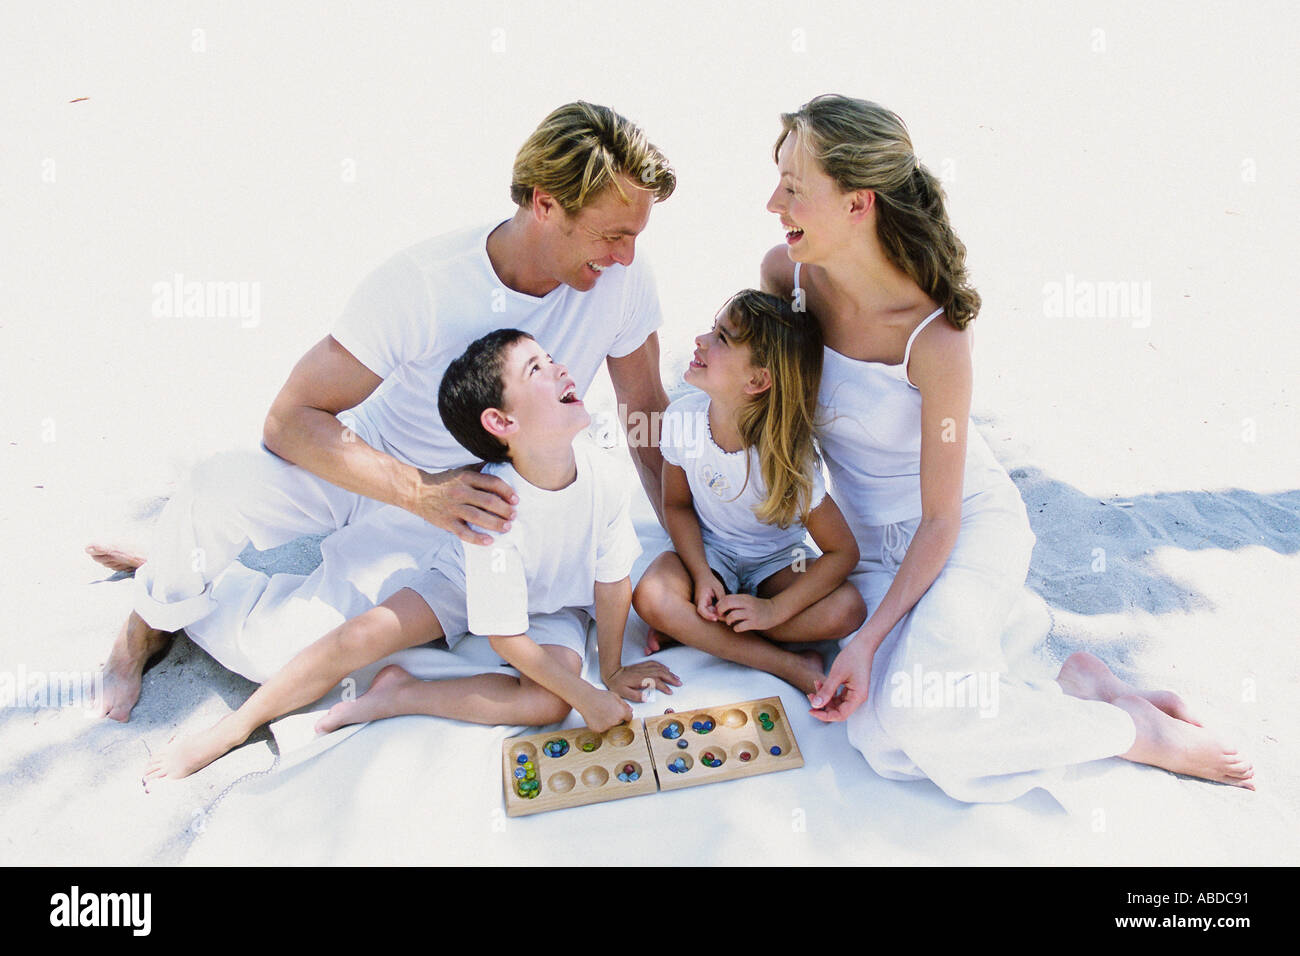 Family playing a game - Stock Image